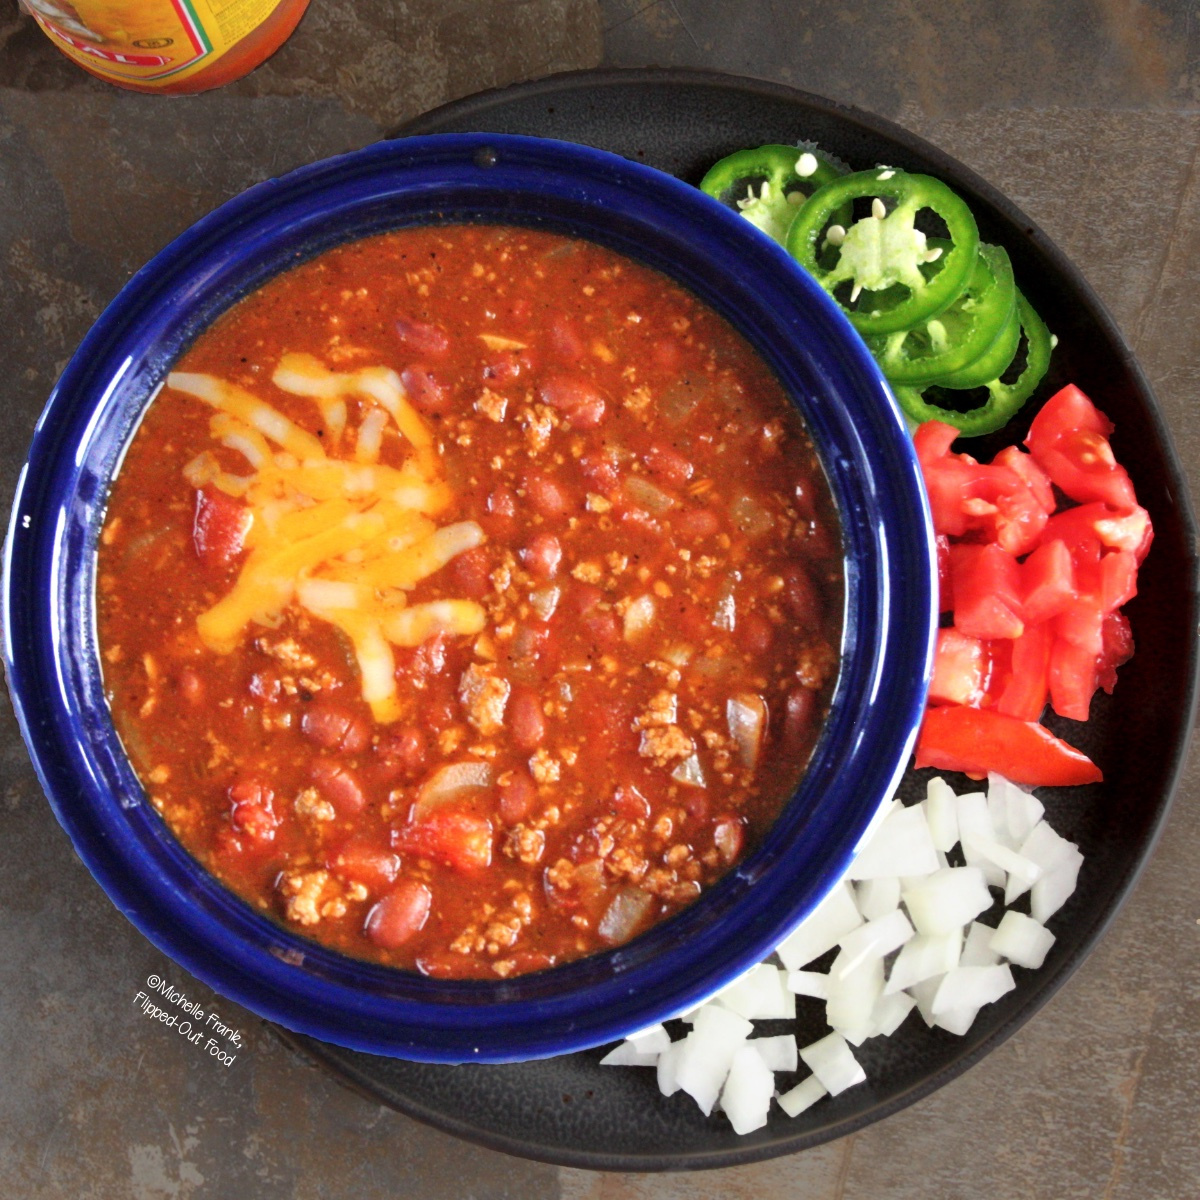 Easy Soups for Fall: Easy Turkey Chili, served in a blue bowl and topped with shredded cheese. The plate underneath the bowl holds garnishes including sliced jalapenos and chopped tomatoes and onions.